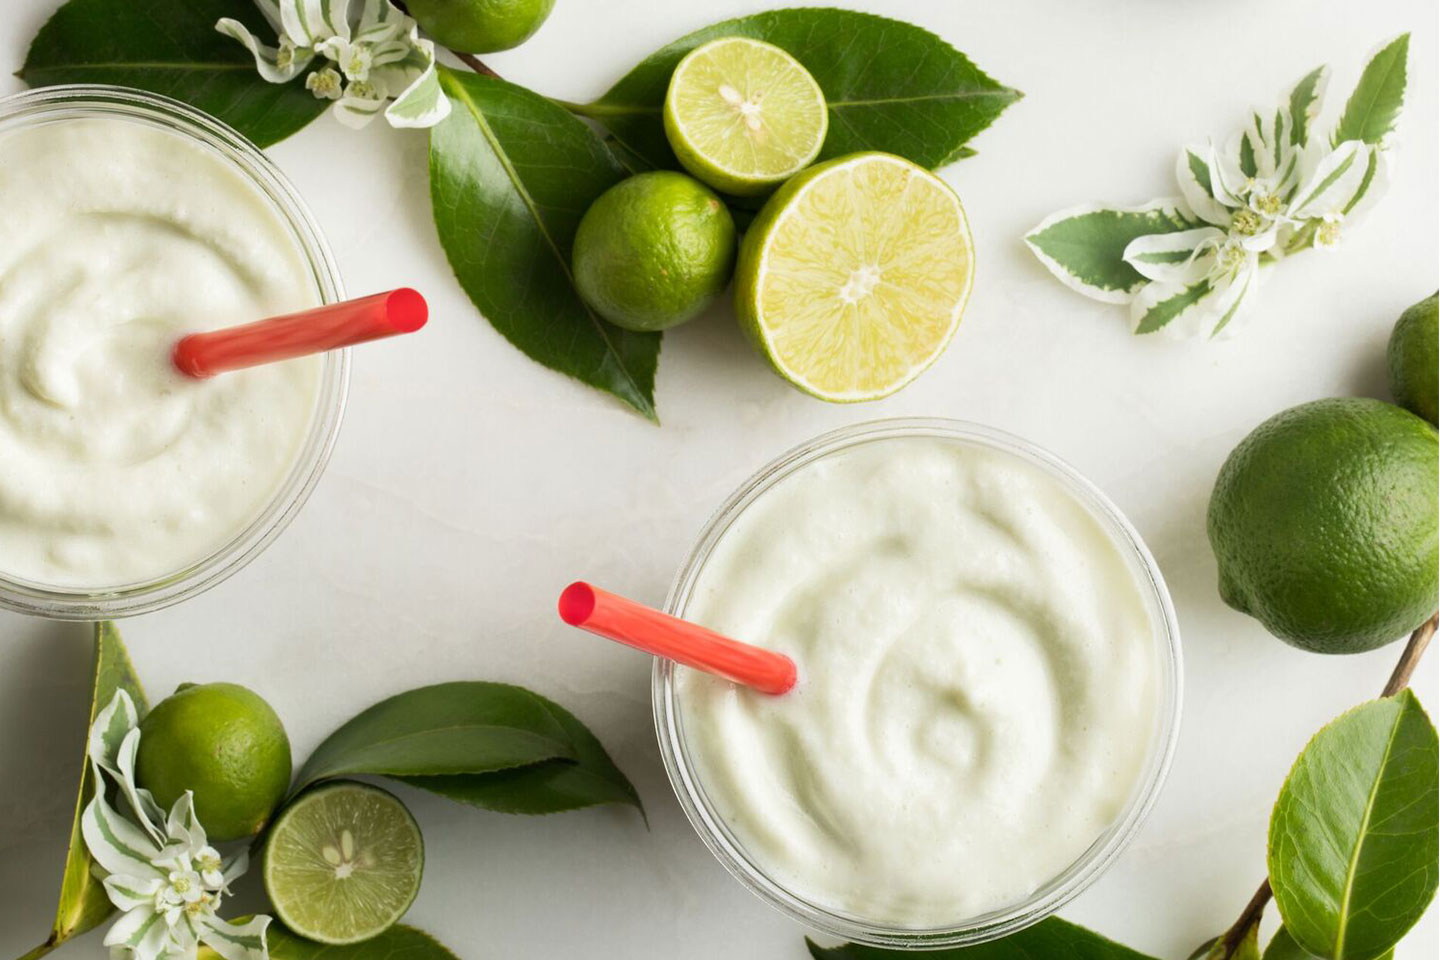 Chick-fil-A Lime Drink